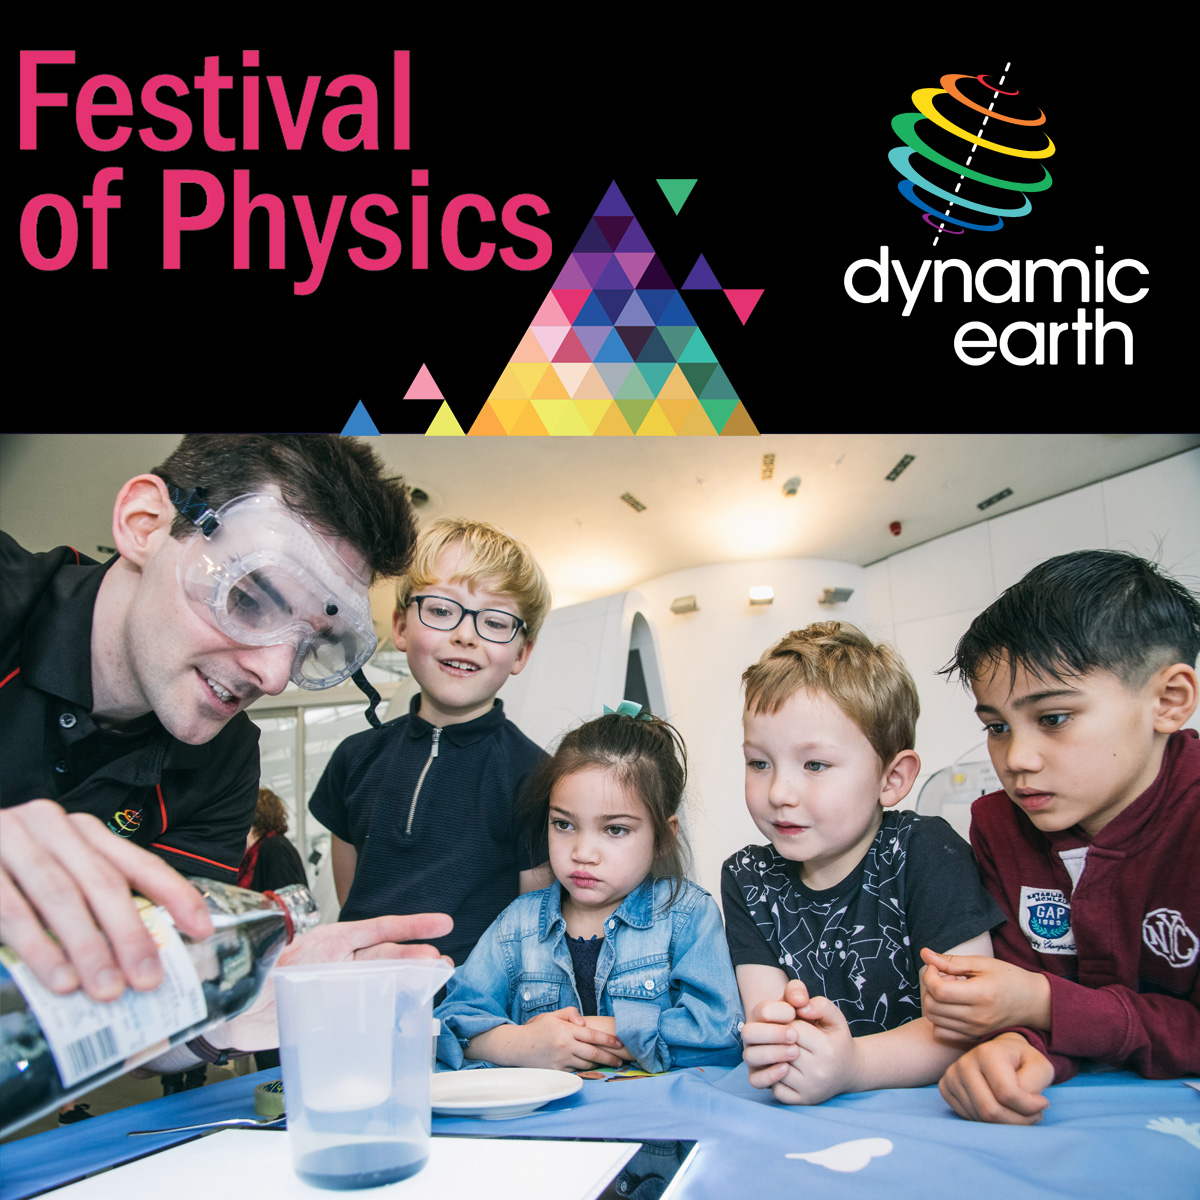 Festival of Physics